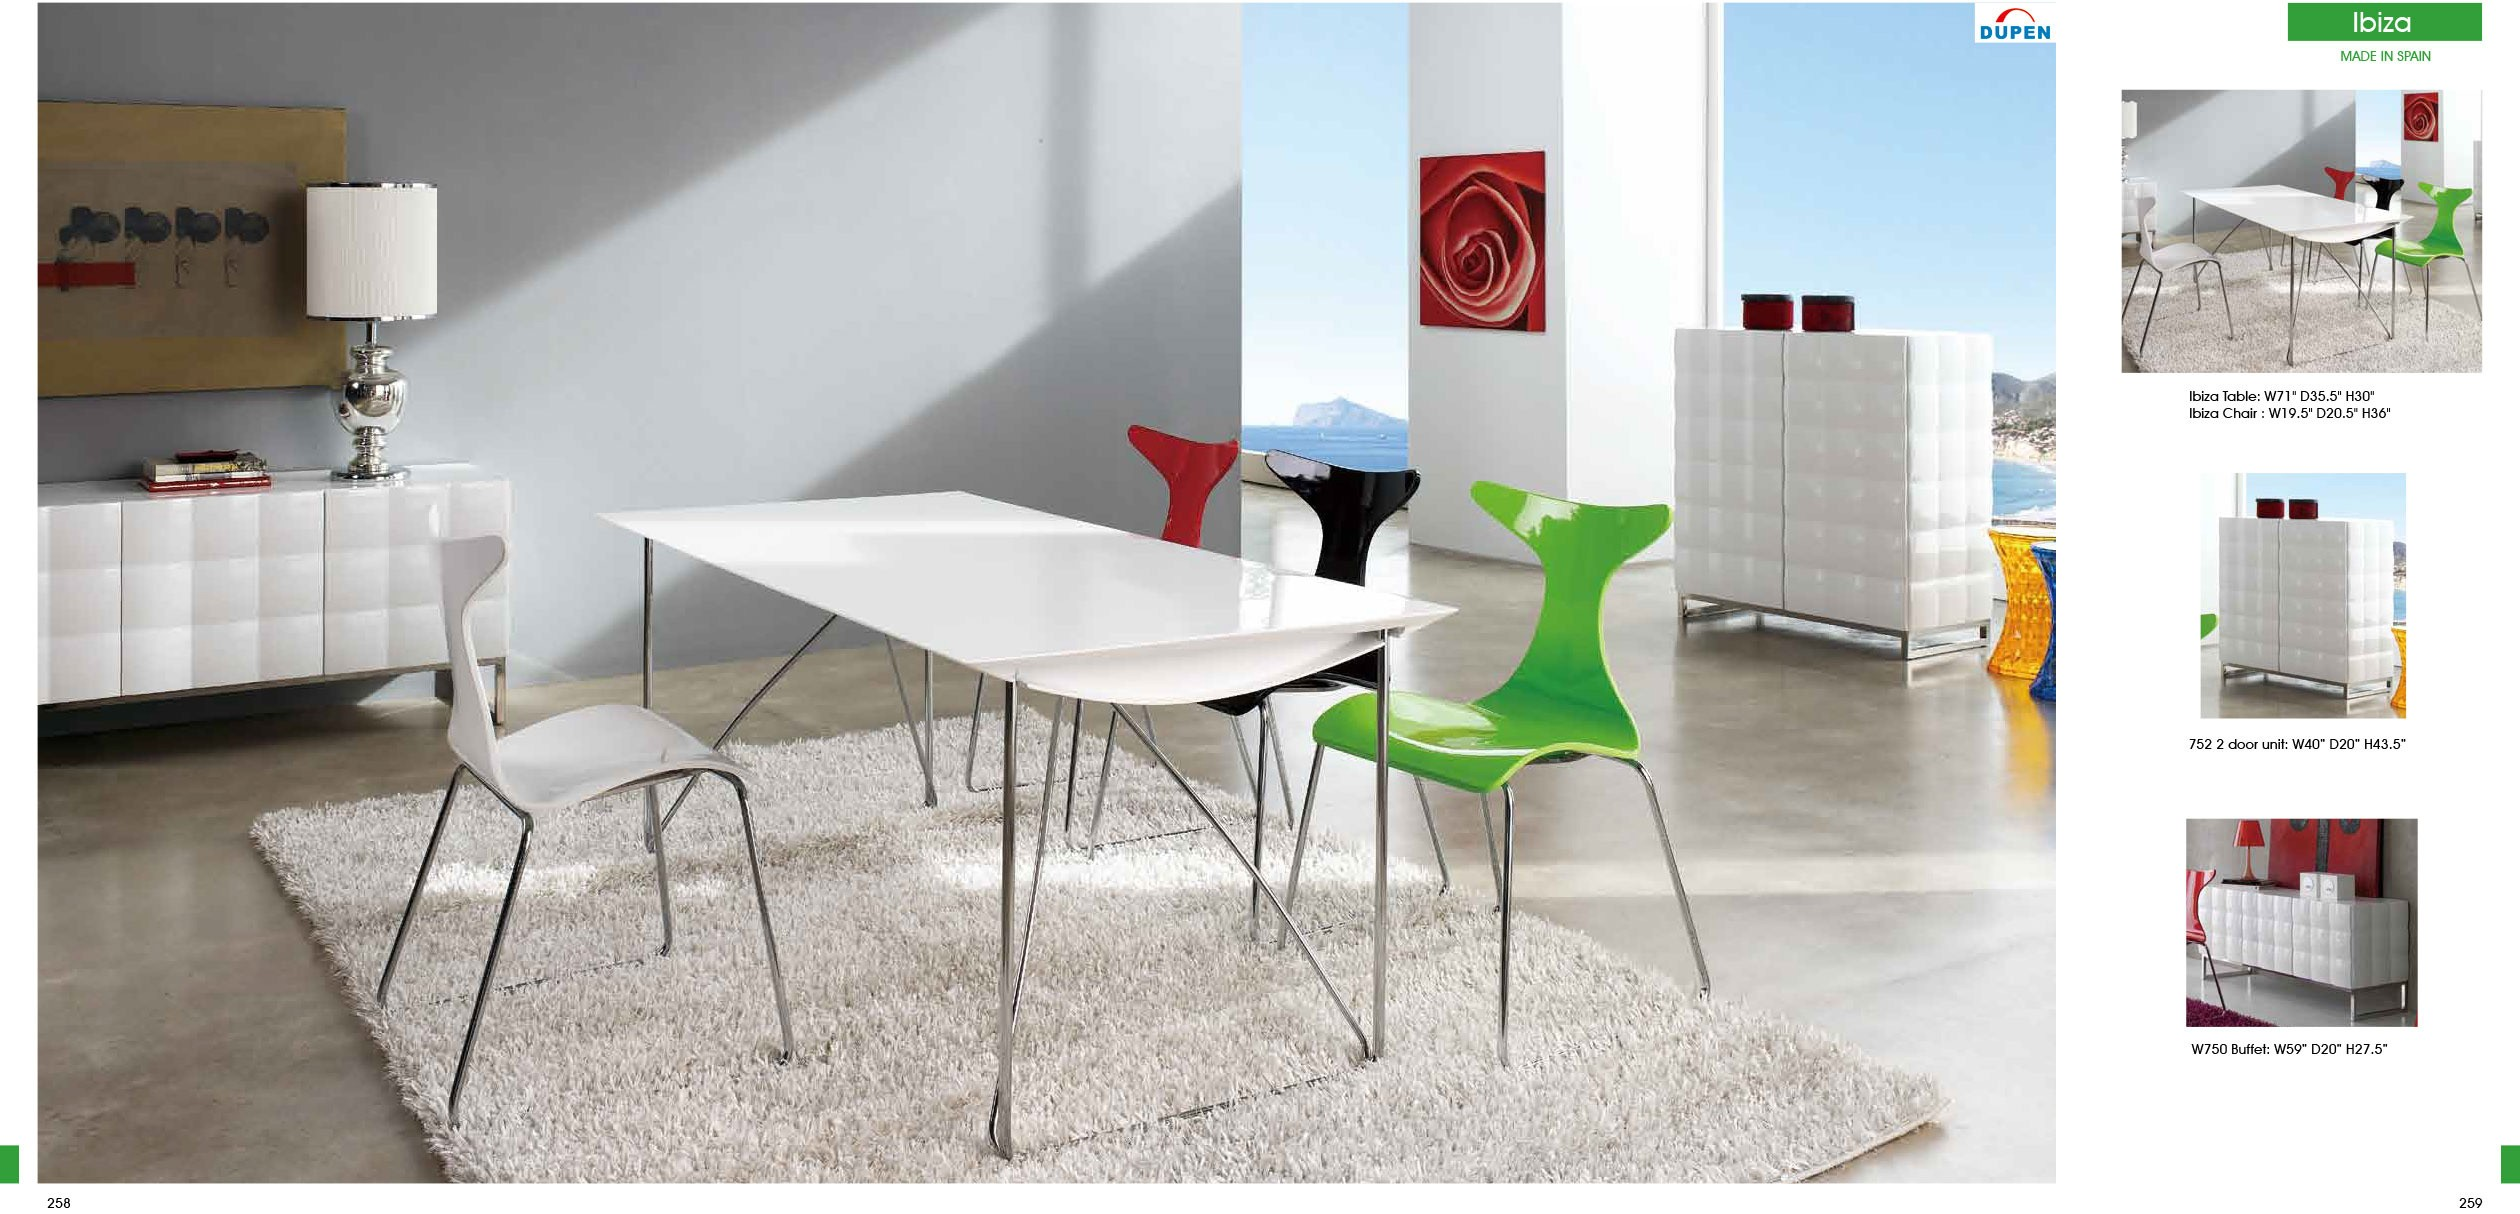 ESF Dupen Dining Spain Ibiza Table DT03 w/Ibiza Chairs CH1002, 752 unit, 750 buffet